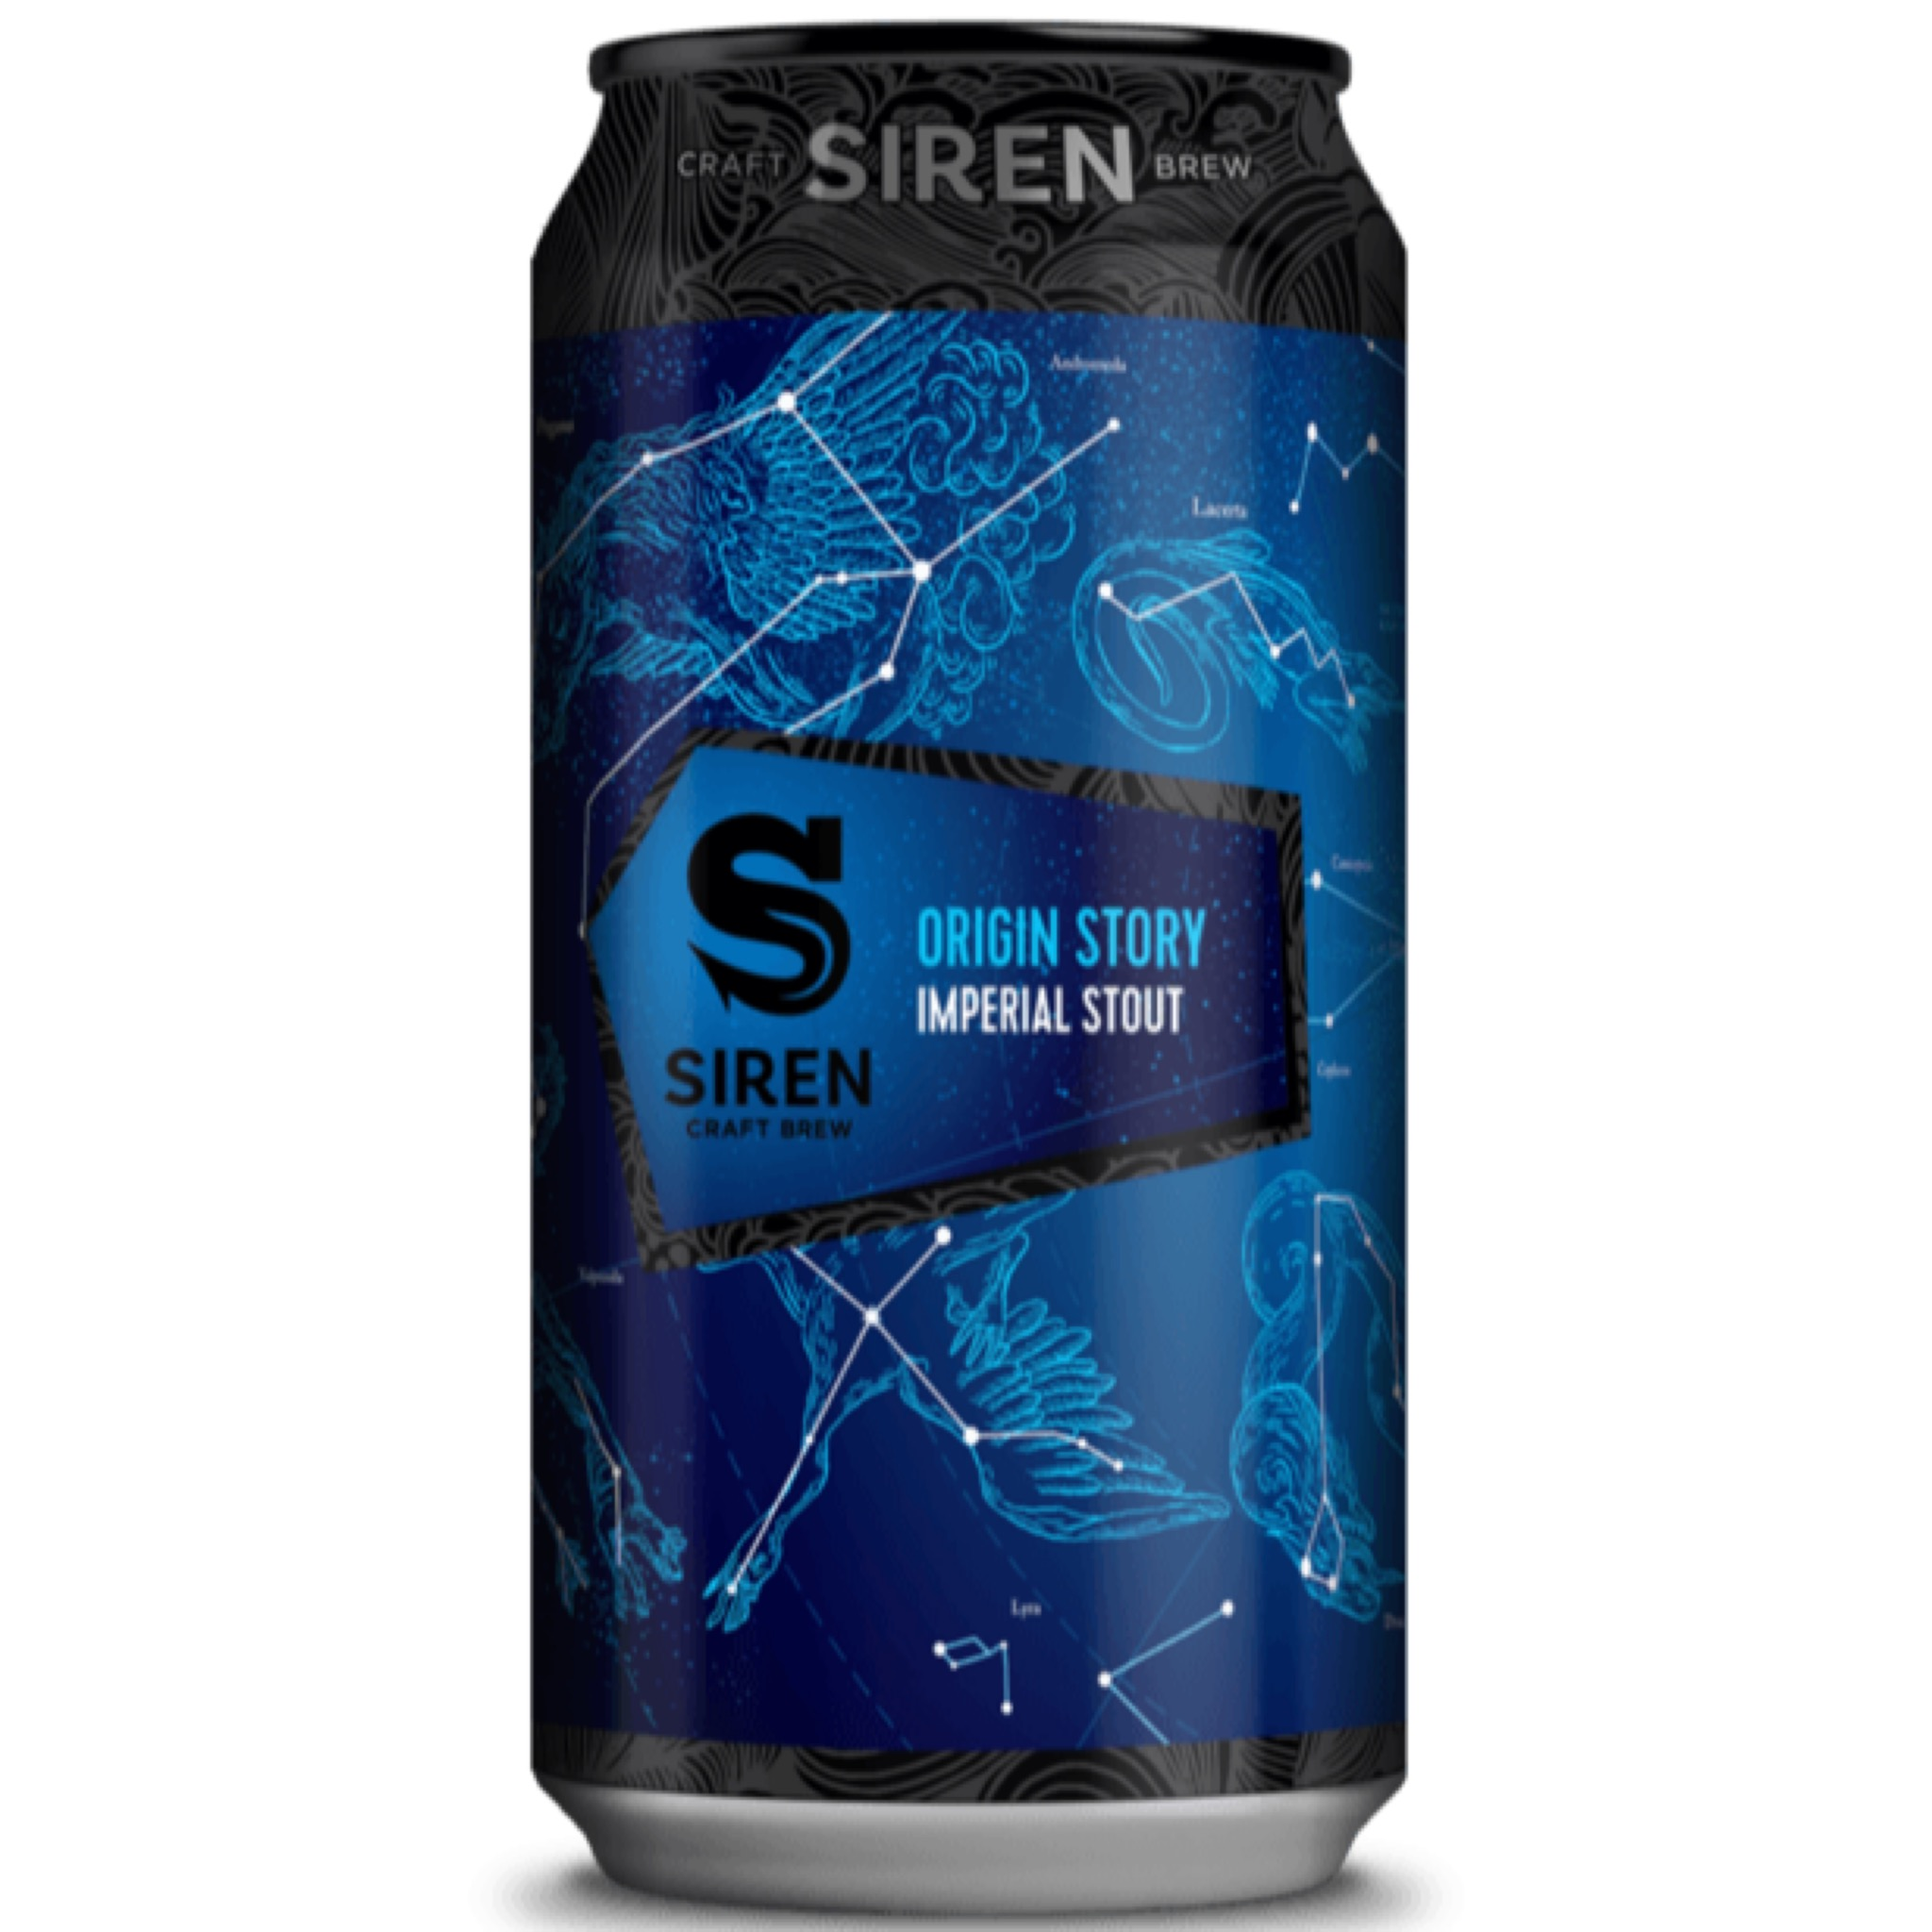 Origin Story - Imperial Stout 10% 440ml Siren Craft Brew